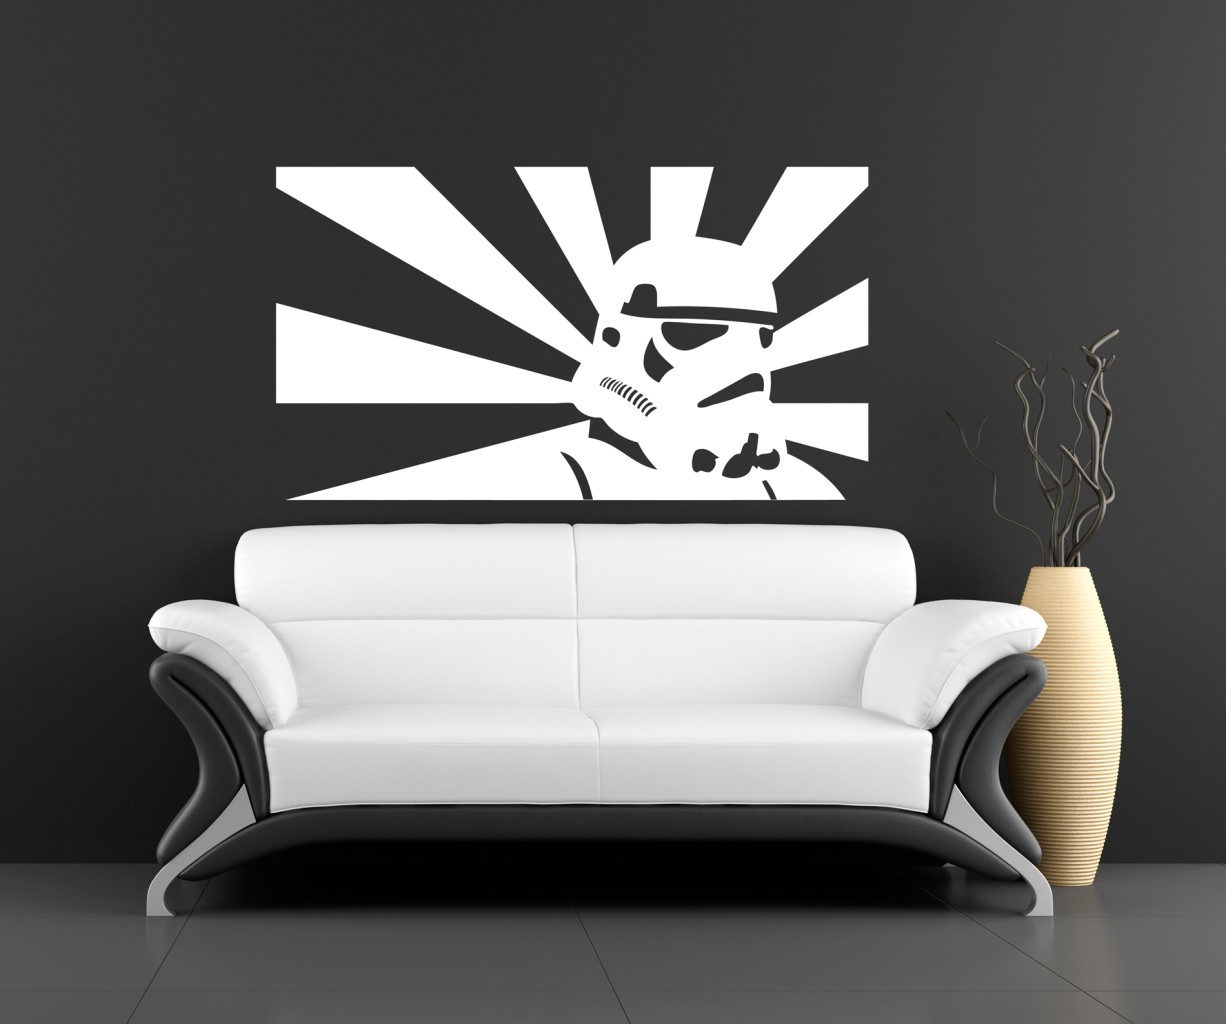 Star Wars Themed Bedroom Ideas 45 Best Star Wars Room Ideas For 2019